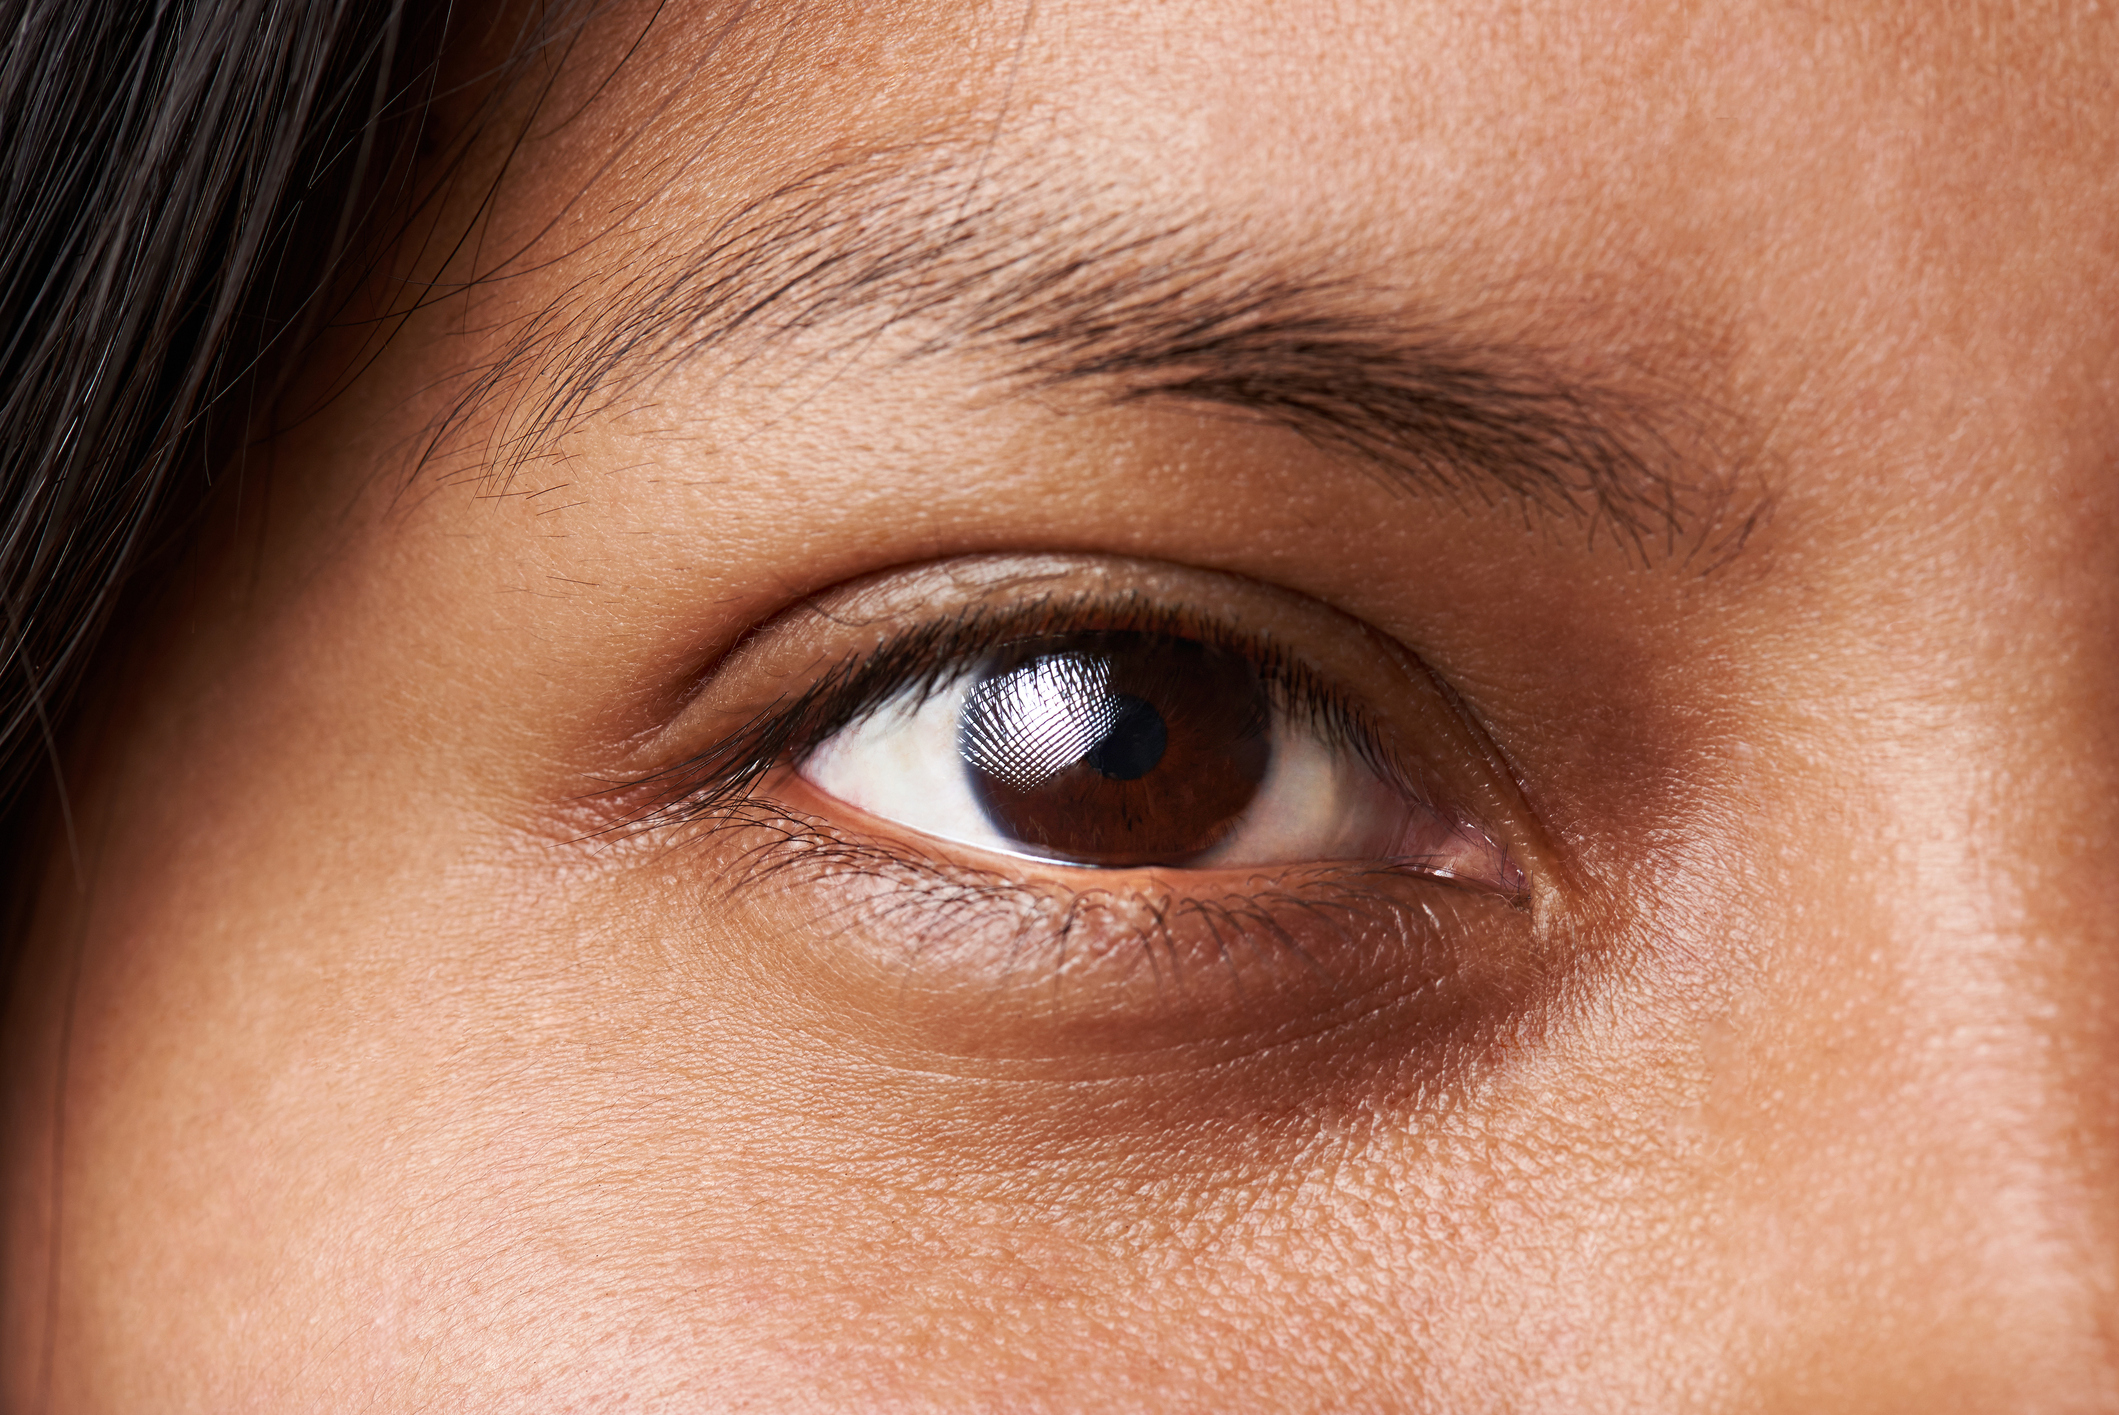 lose up of a patient's under eye